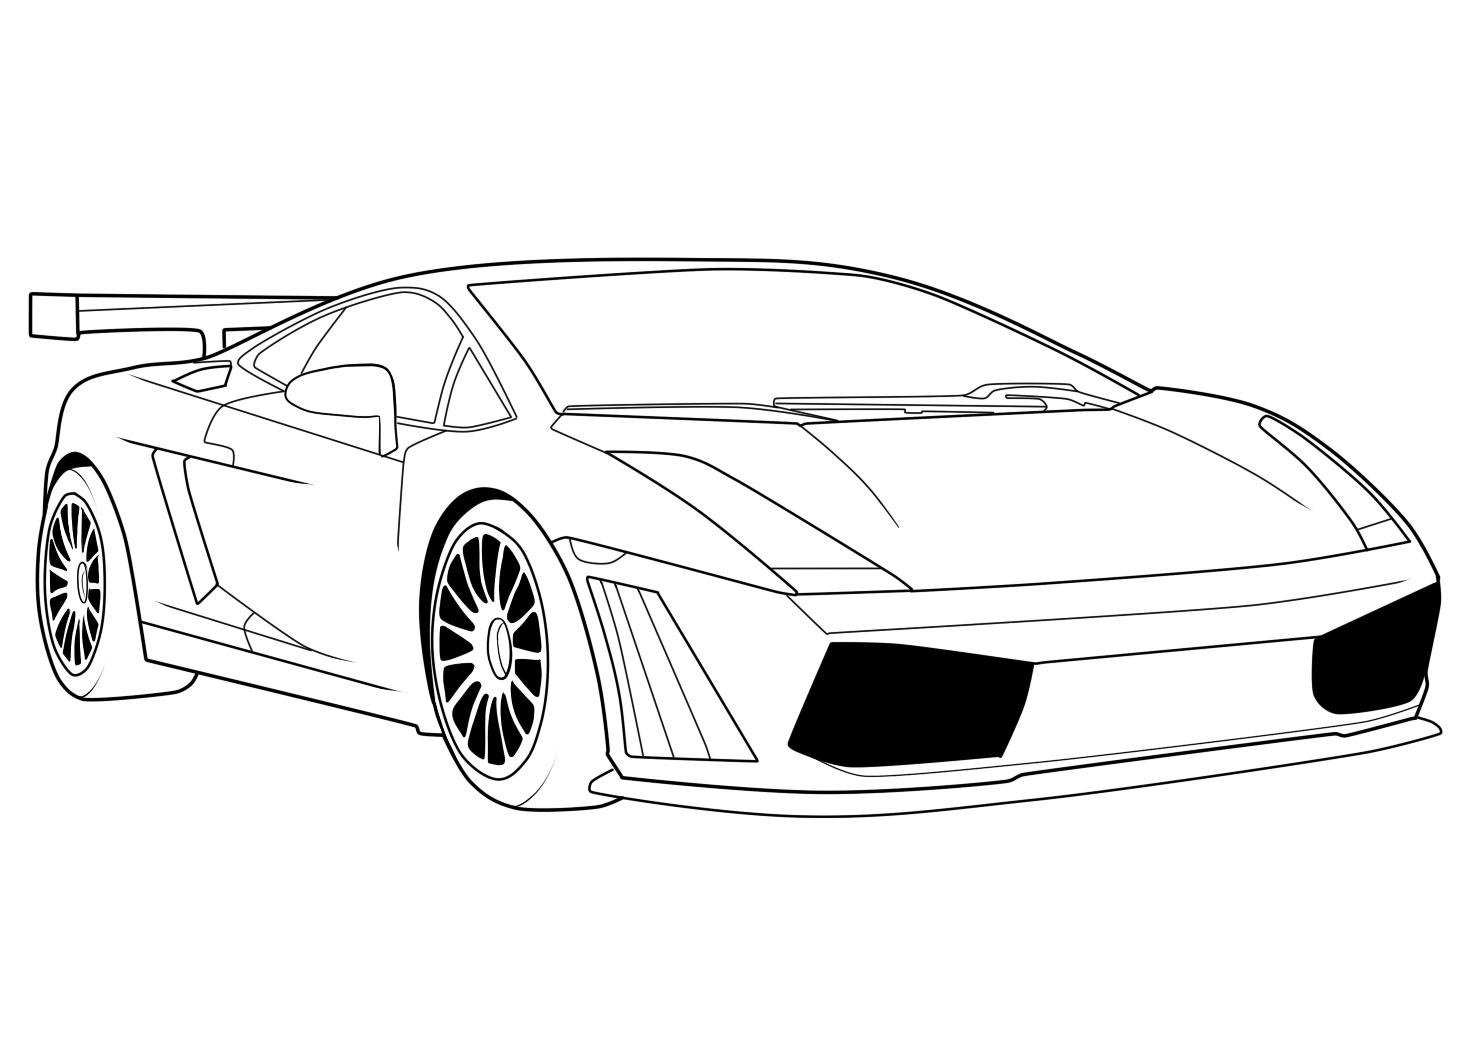 lamborghini car coloring pages - Lamborghini Coloring Pages